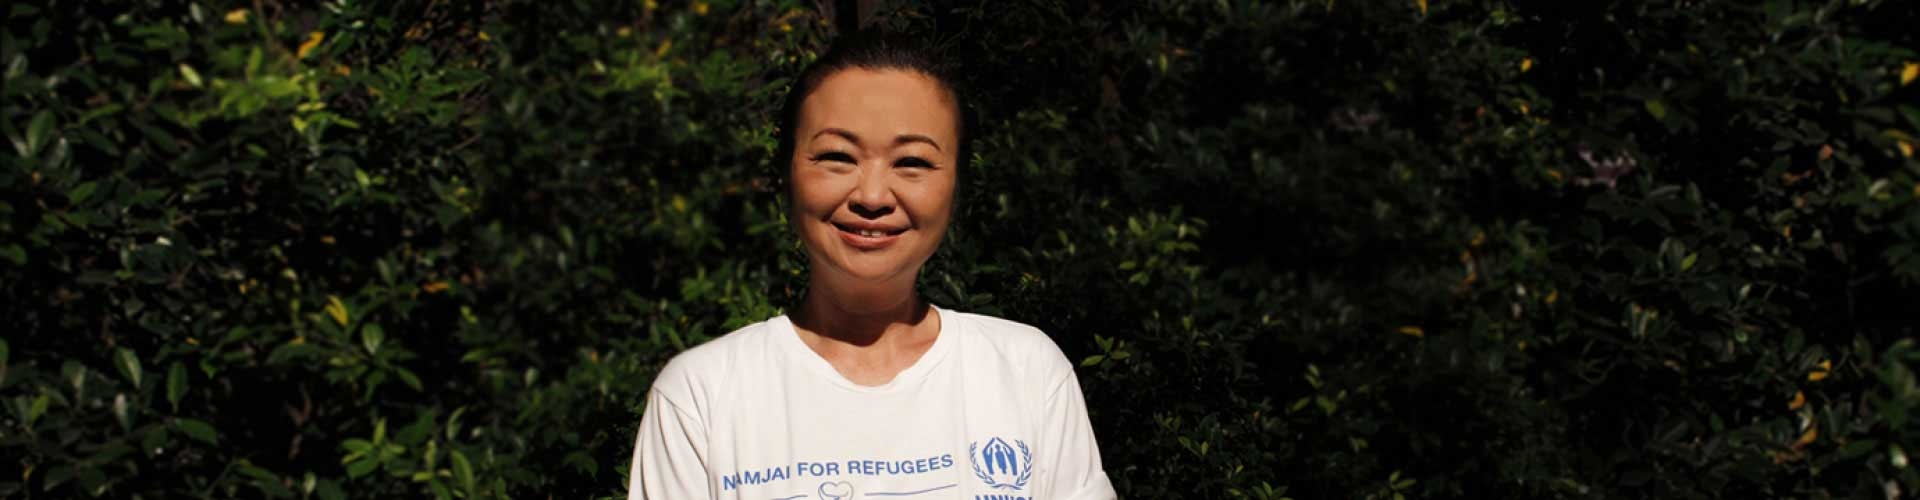 Jennifer Kim with Kong Saharat's t-shirt online auction mission in Namjai for Refugees